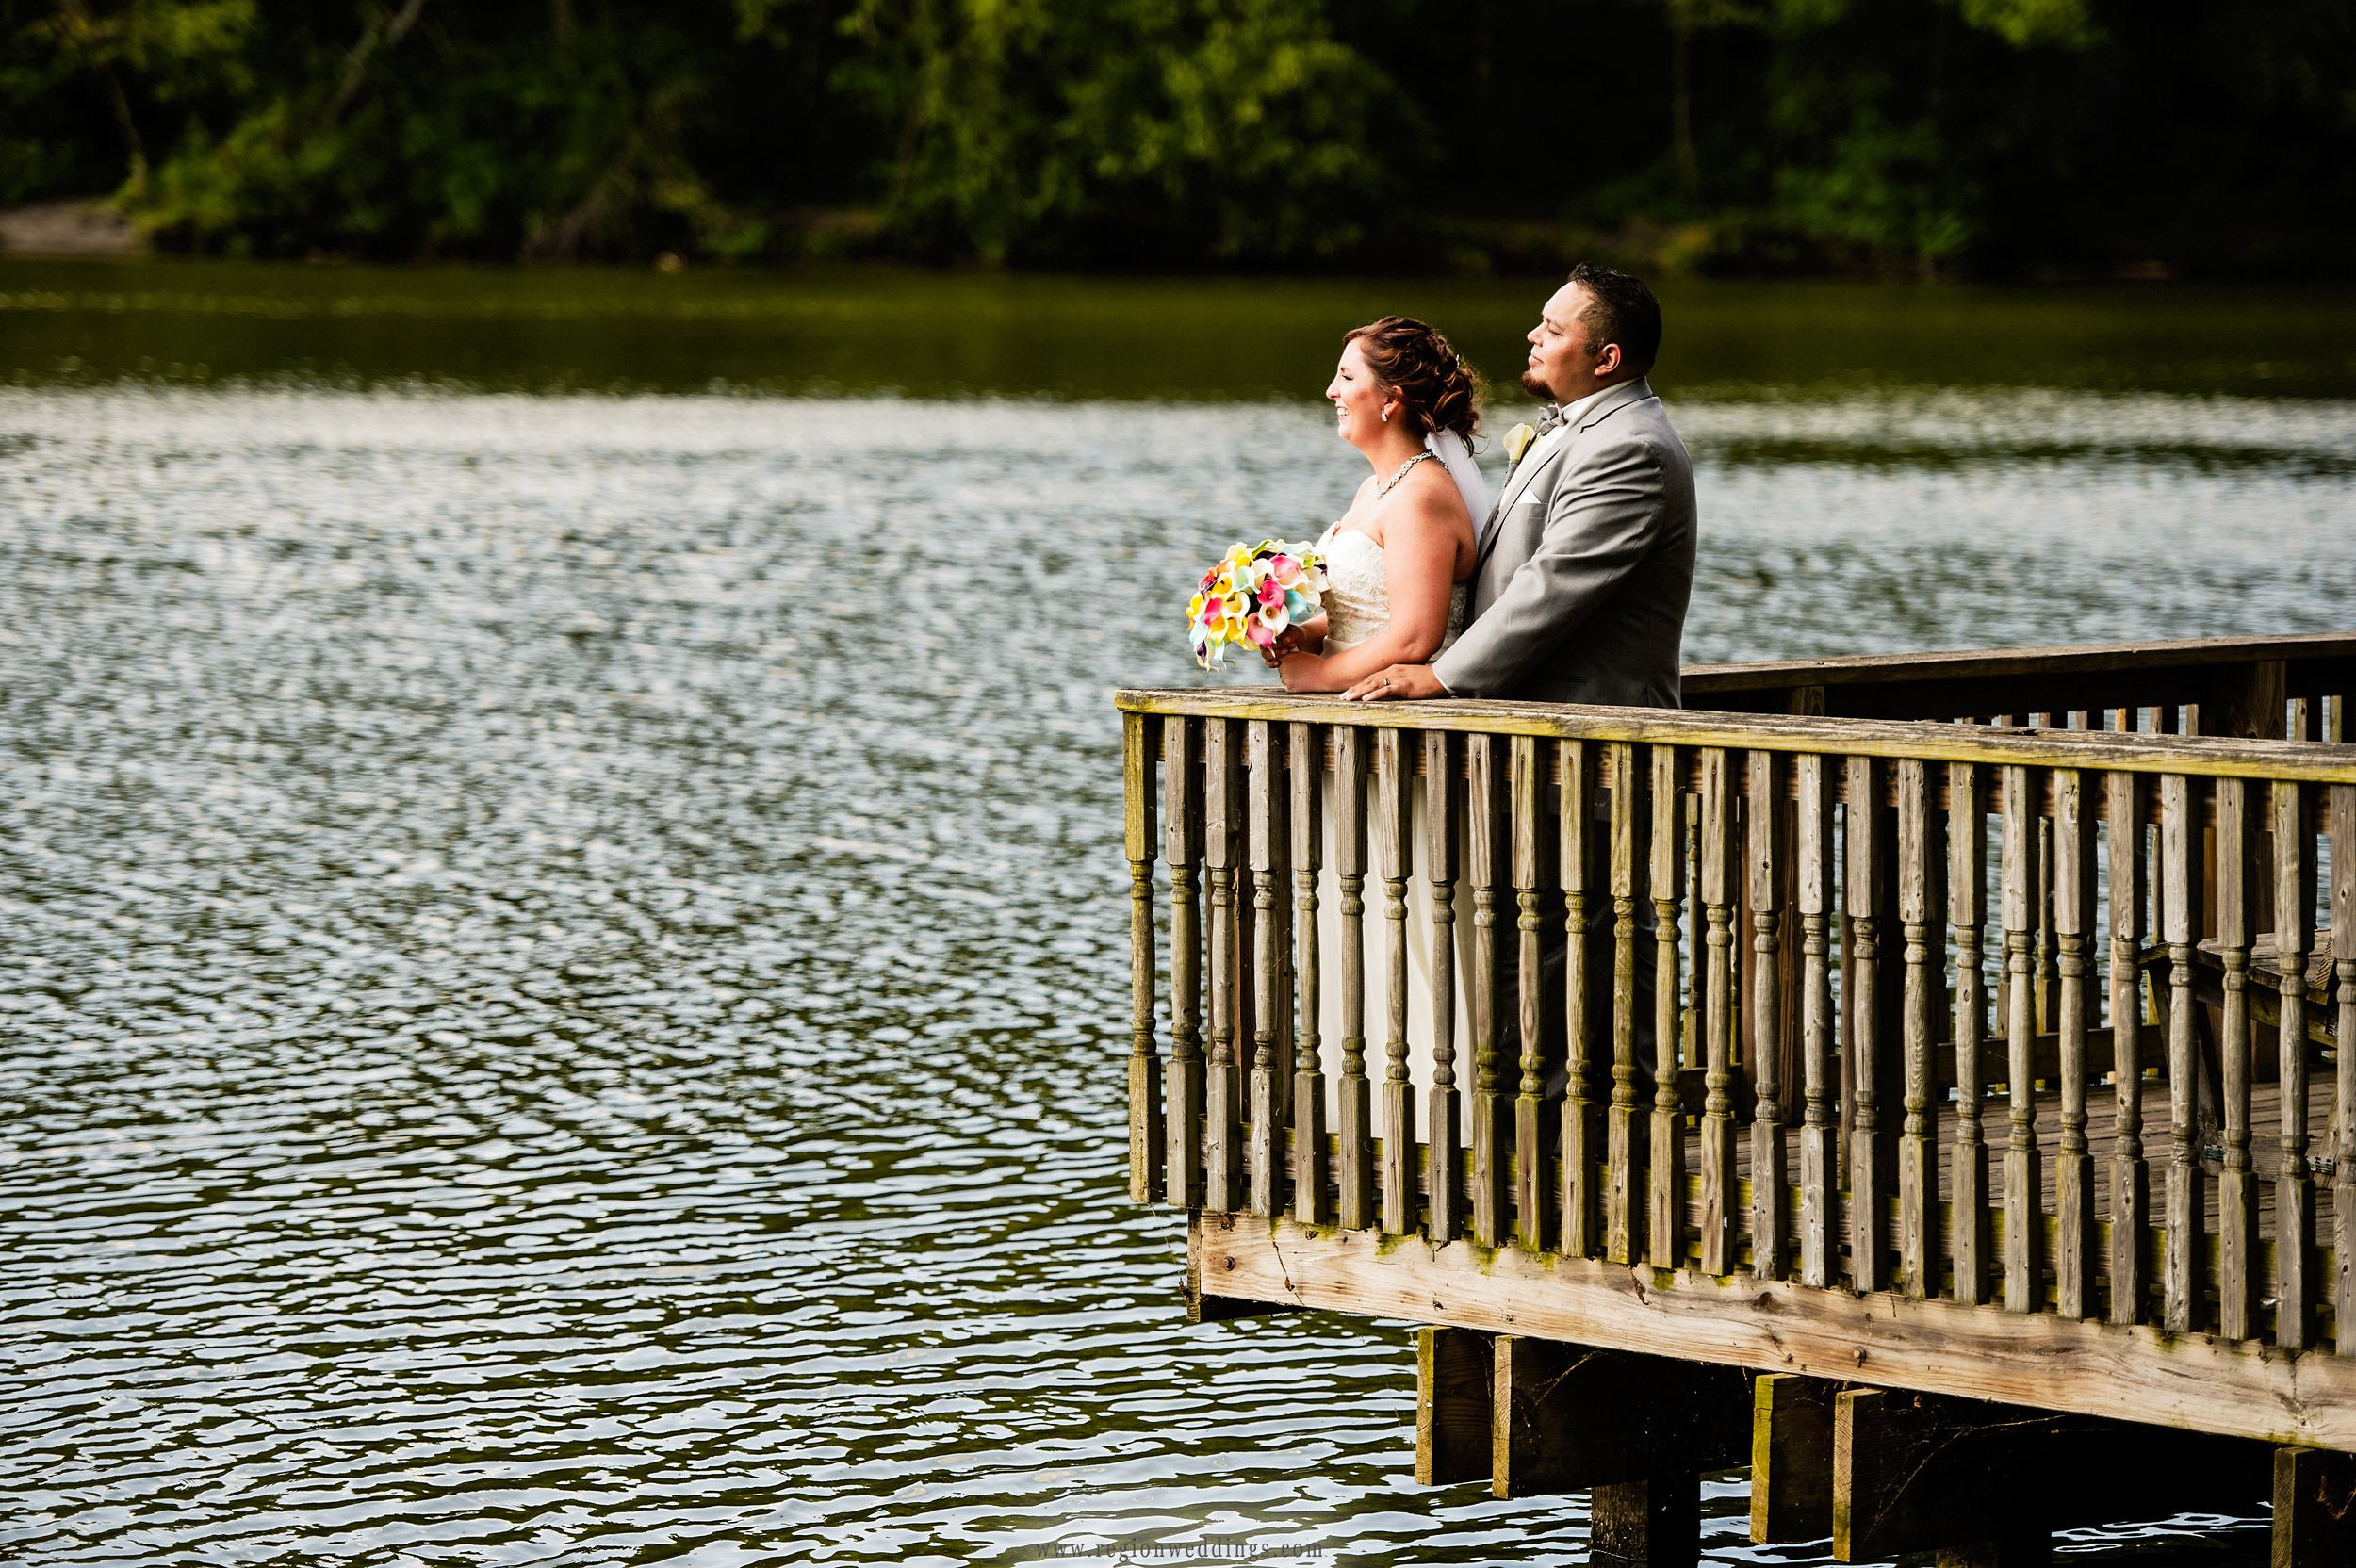 Romantic wedding photo on the pier at Lemon Lake County Park.